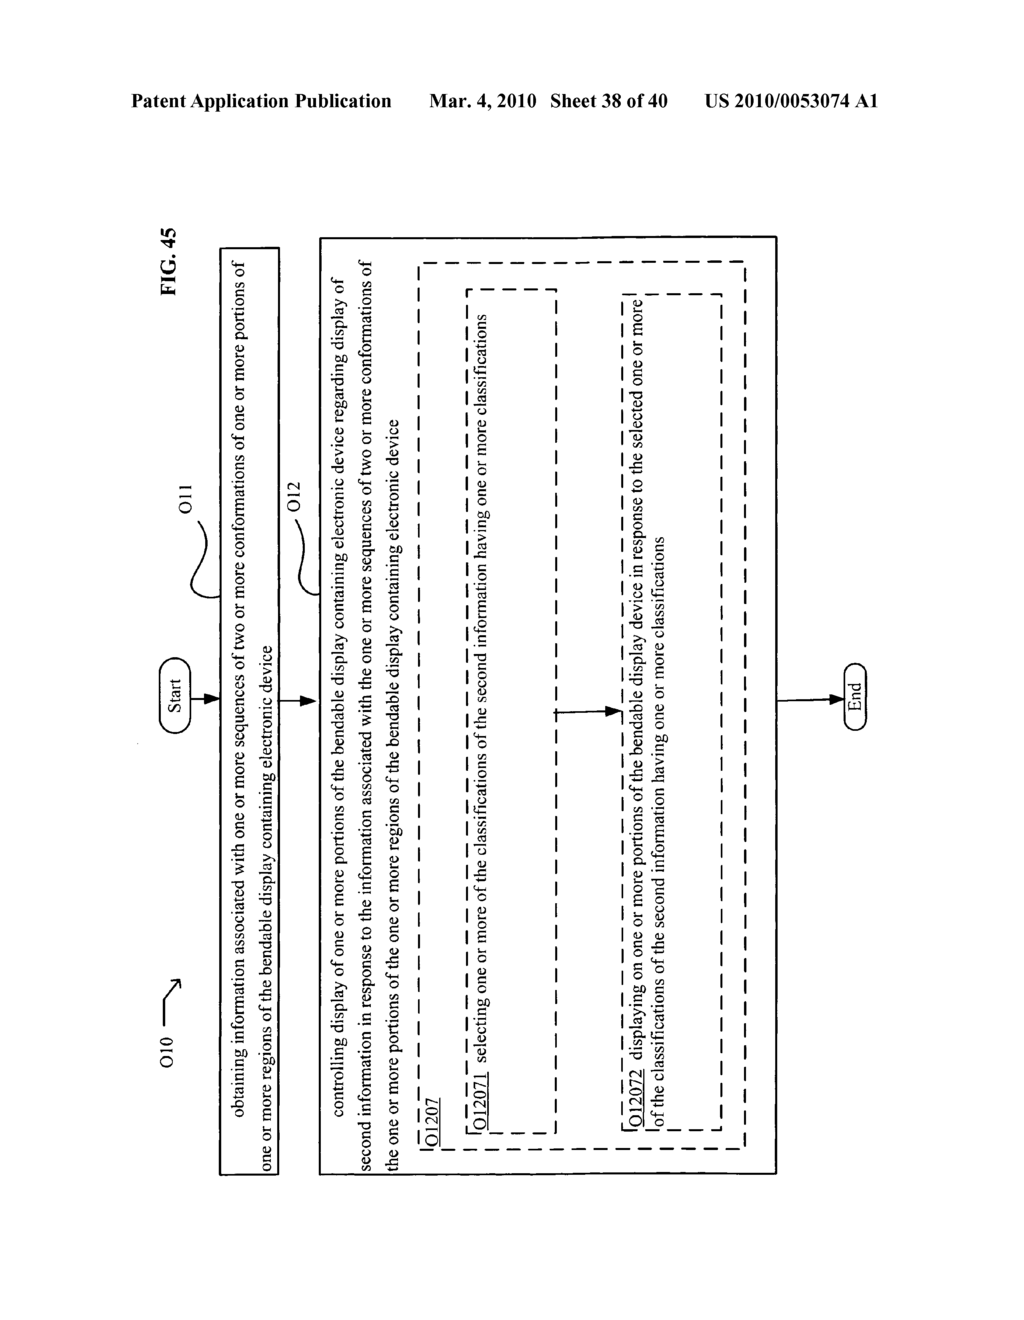 Display control based on bendable display containing electronic device conformation sequence status - diagram, schematic, and image 39